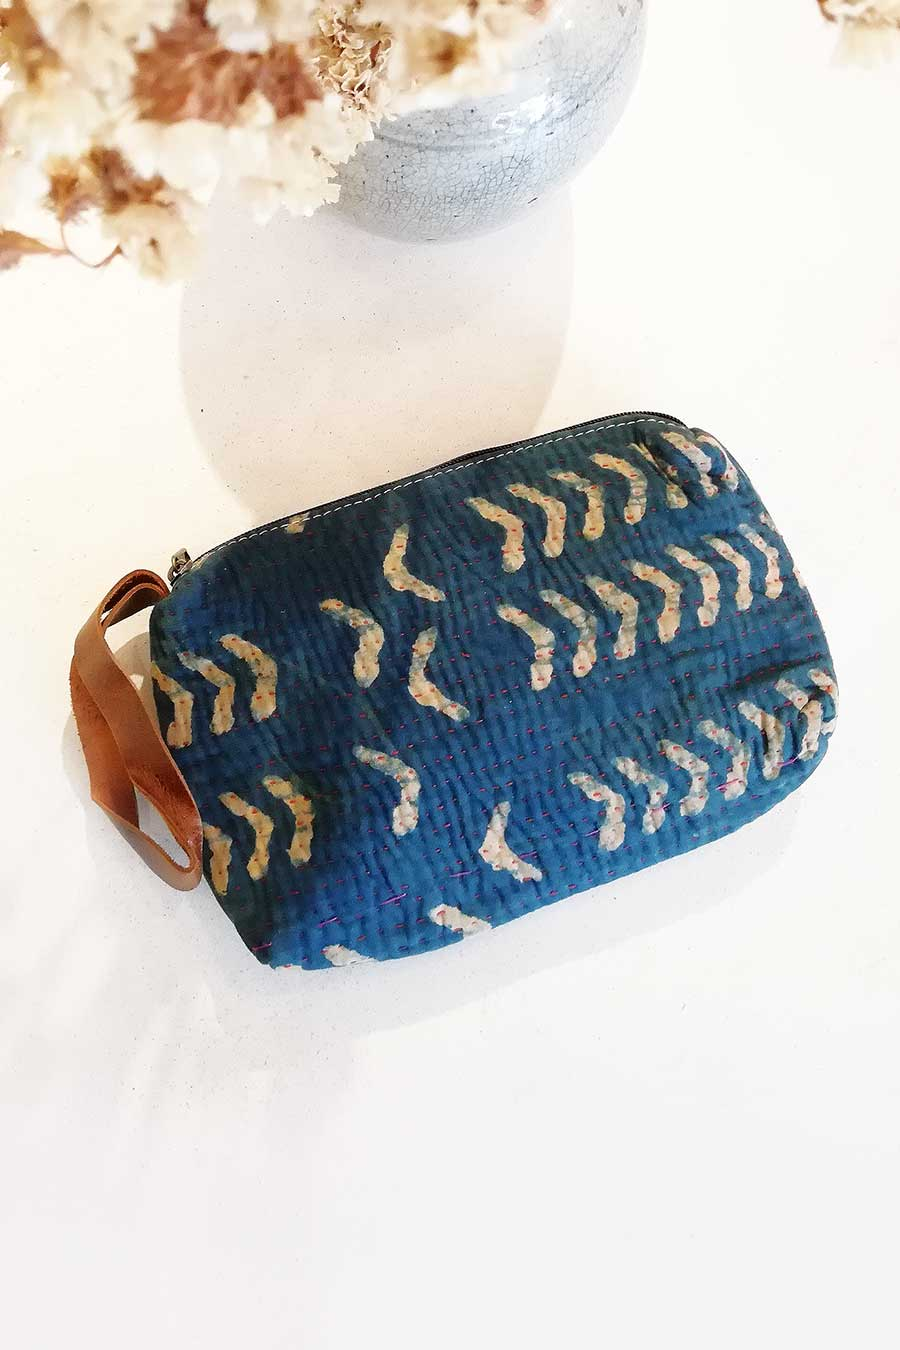 Indigo and Cream Block Print Vintage Fabric Clutch